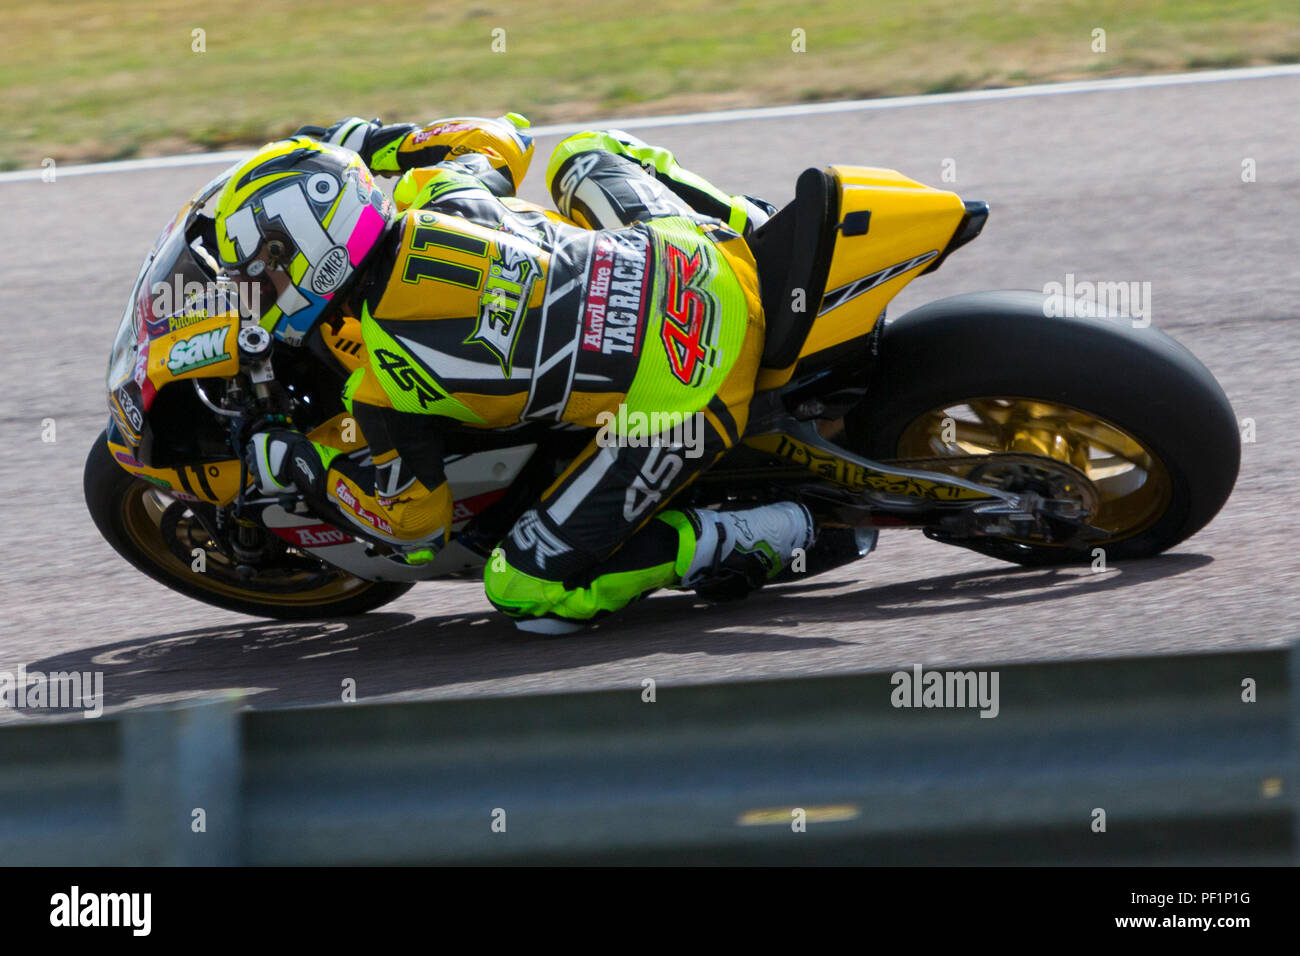 James Ellison. TAG Yamaha. Bennetts, British Super Bike, Thruxton, Hampshire, UK,  2018. - Stock Image